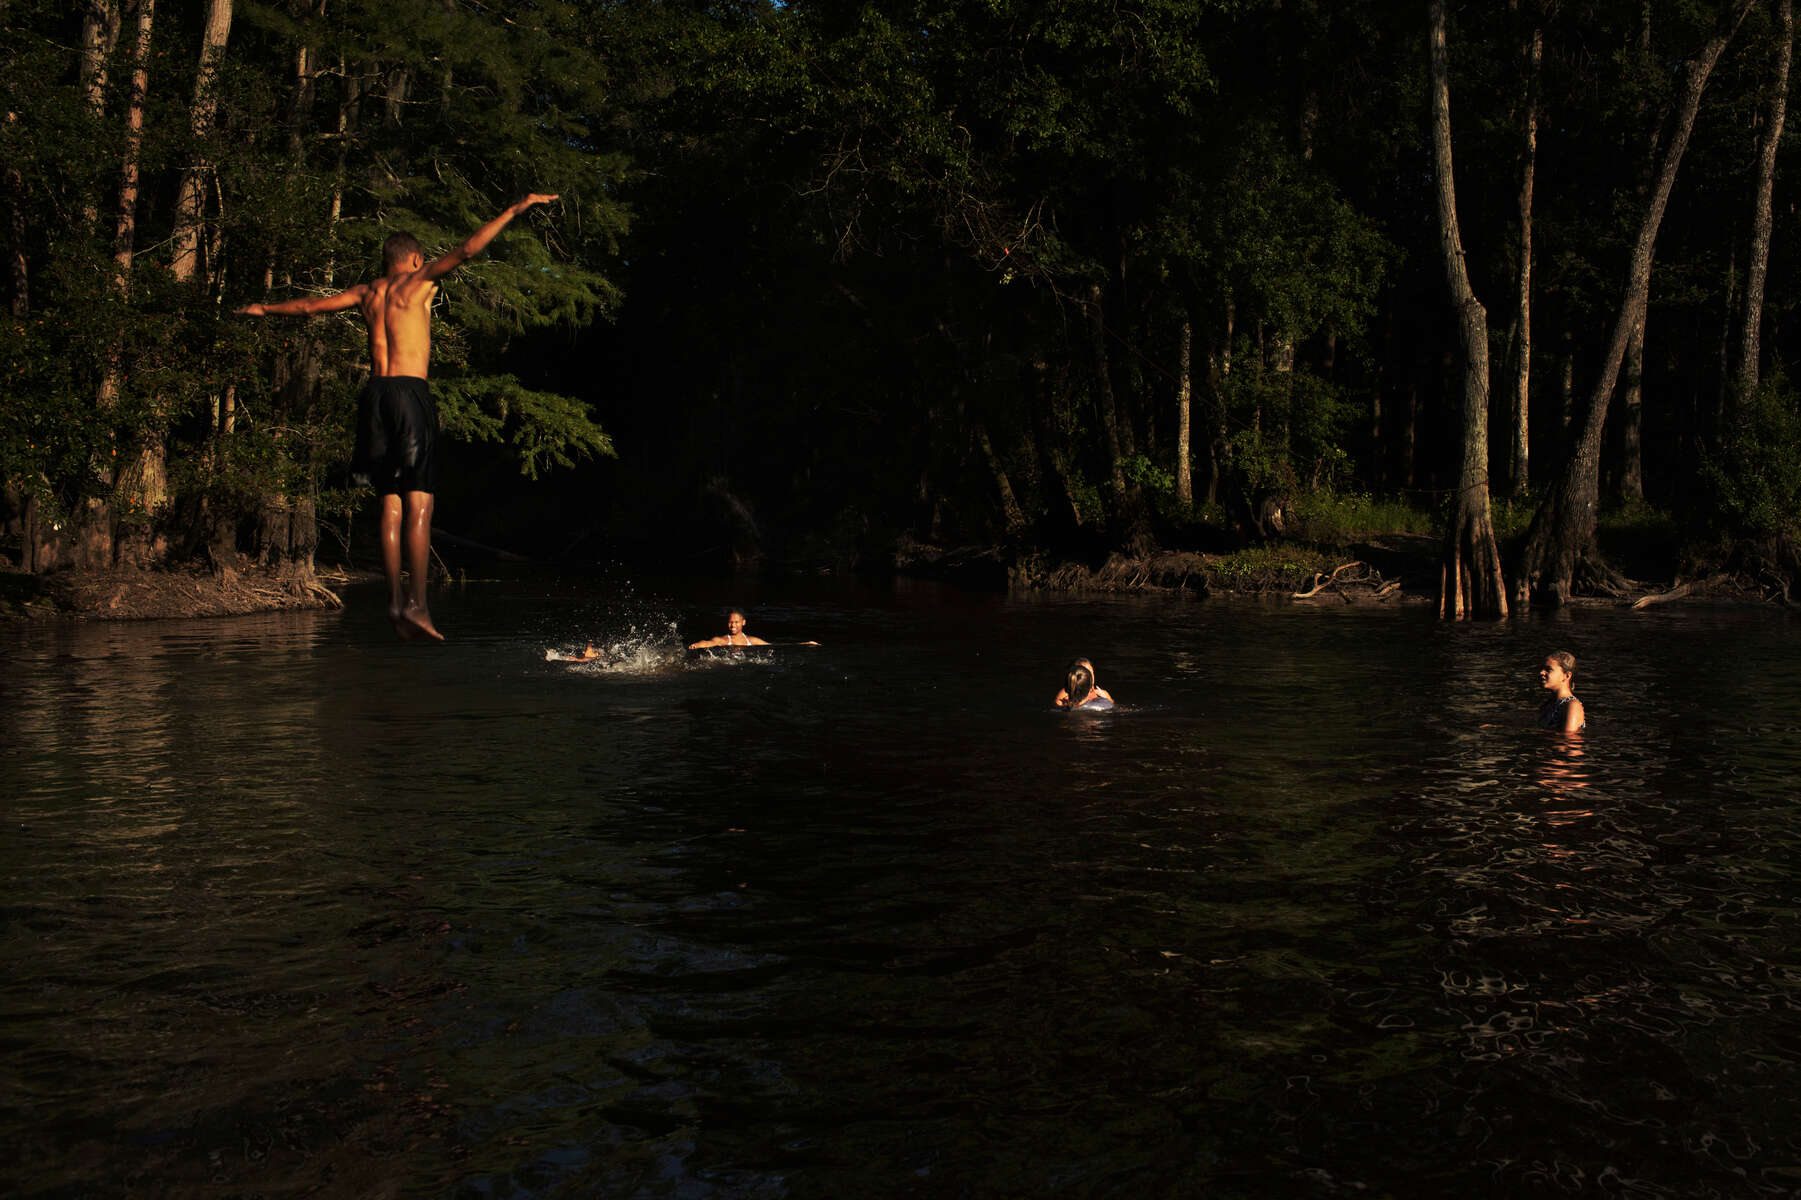 Maxton, NC A group of Lumbee Indians swim in the dark water of the Lumber River at a bend where one of their ancestors, Henry Berry Lowrie, is said to have fought off a local militia more than a century ago. The river is central to the creation story of the tribe and is at the core of Lumbee identity. (Travis Dove for The Washington Post Magazine)